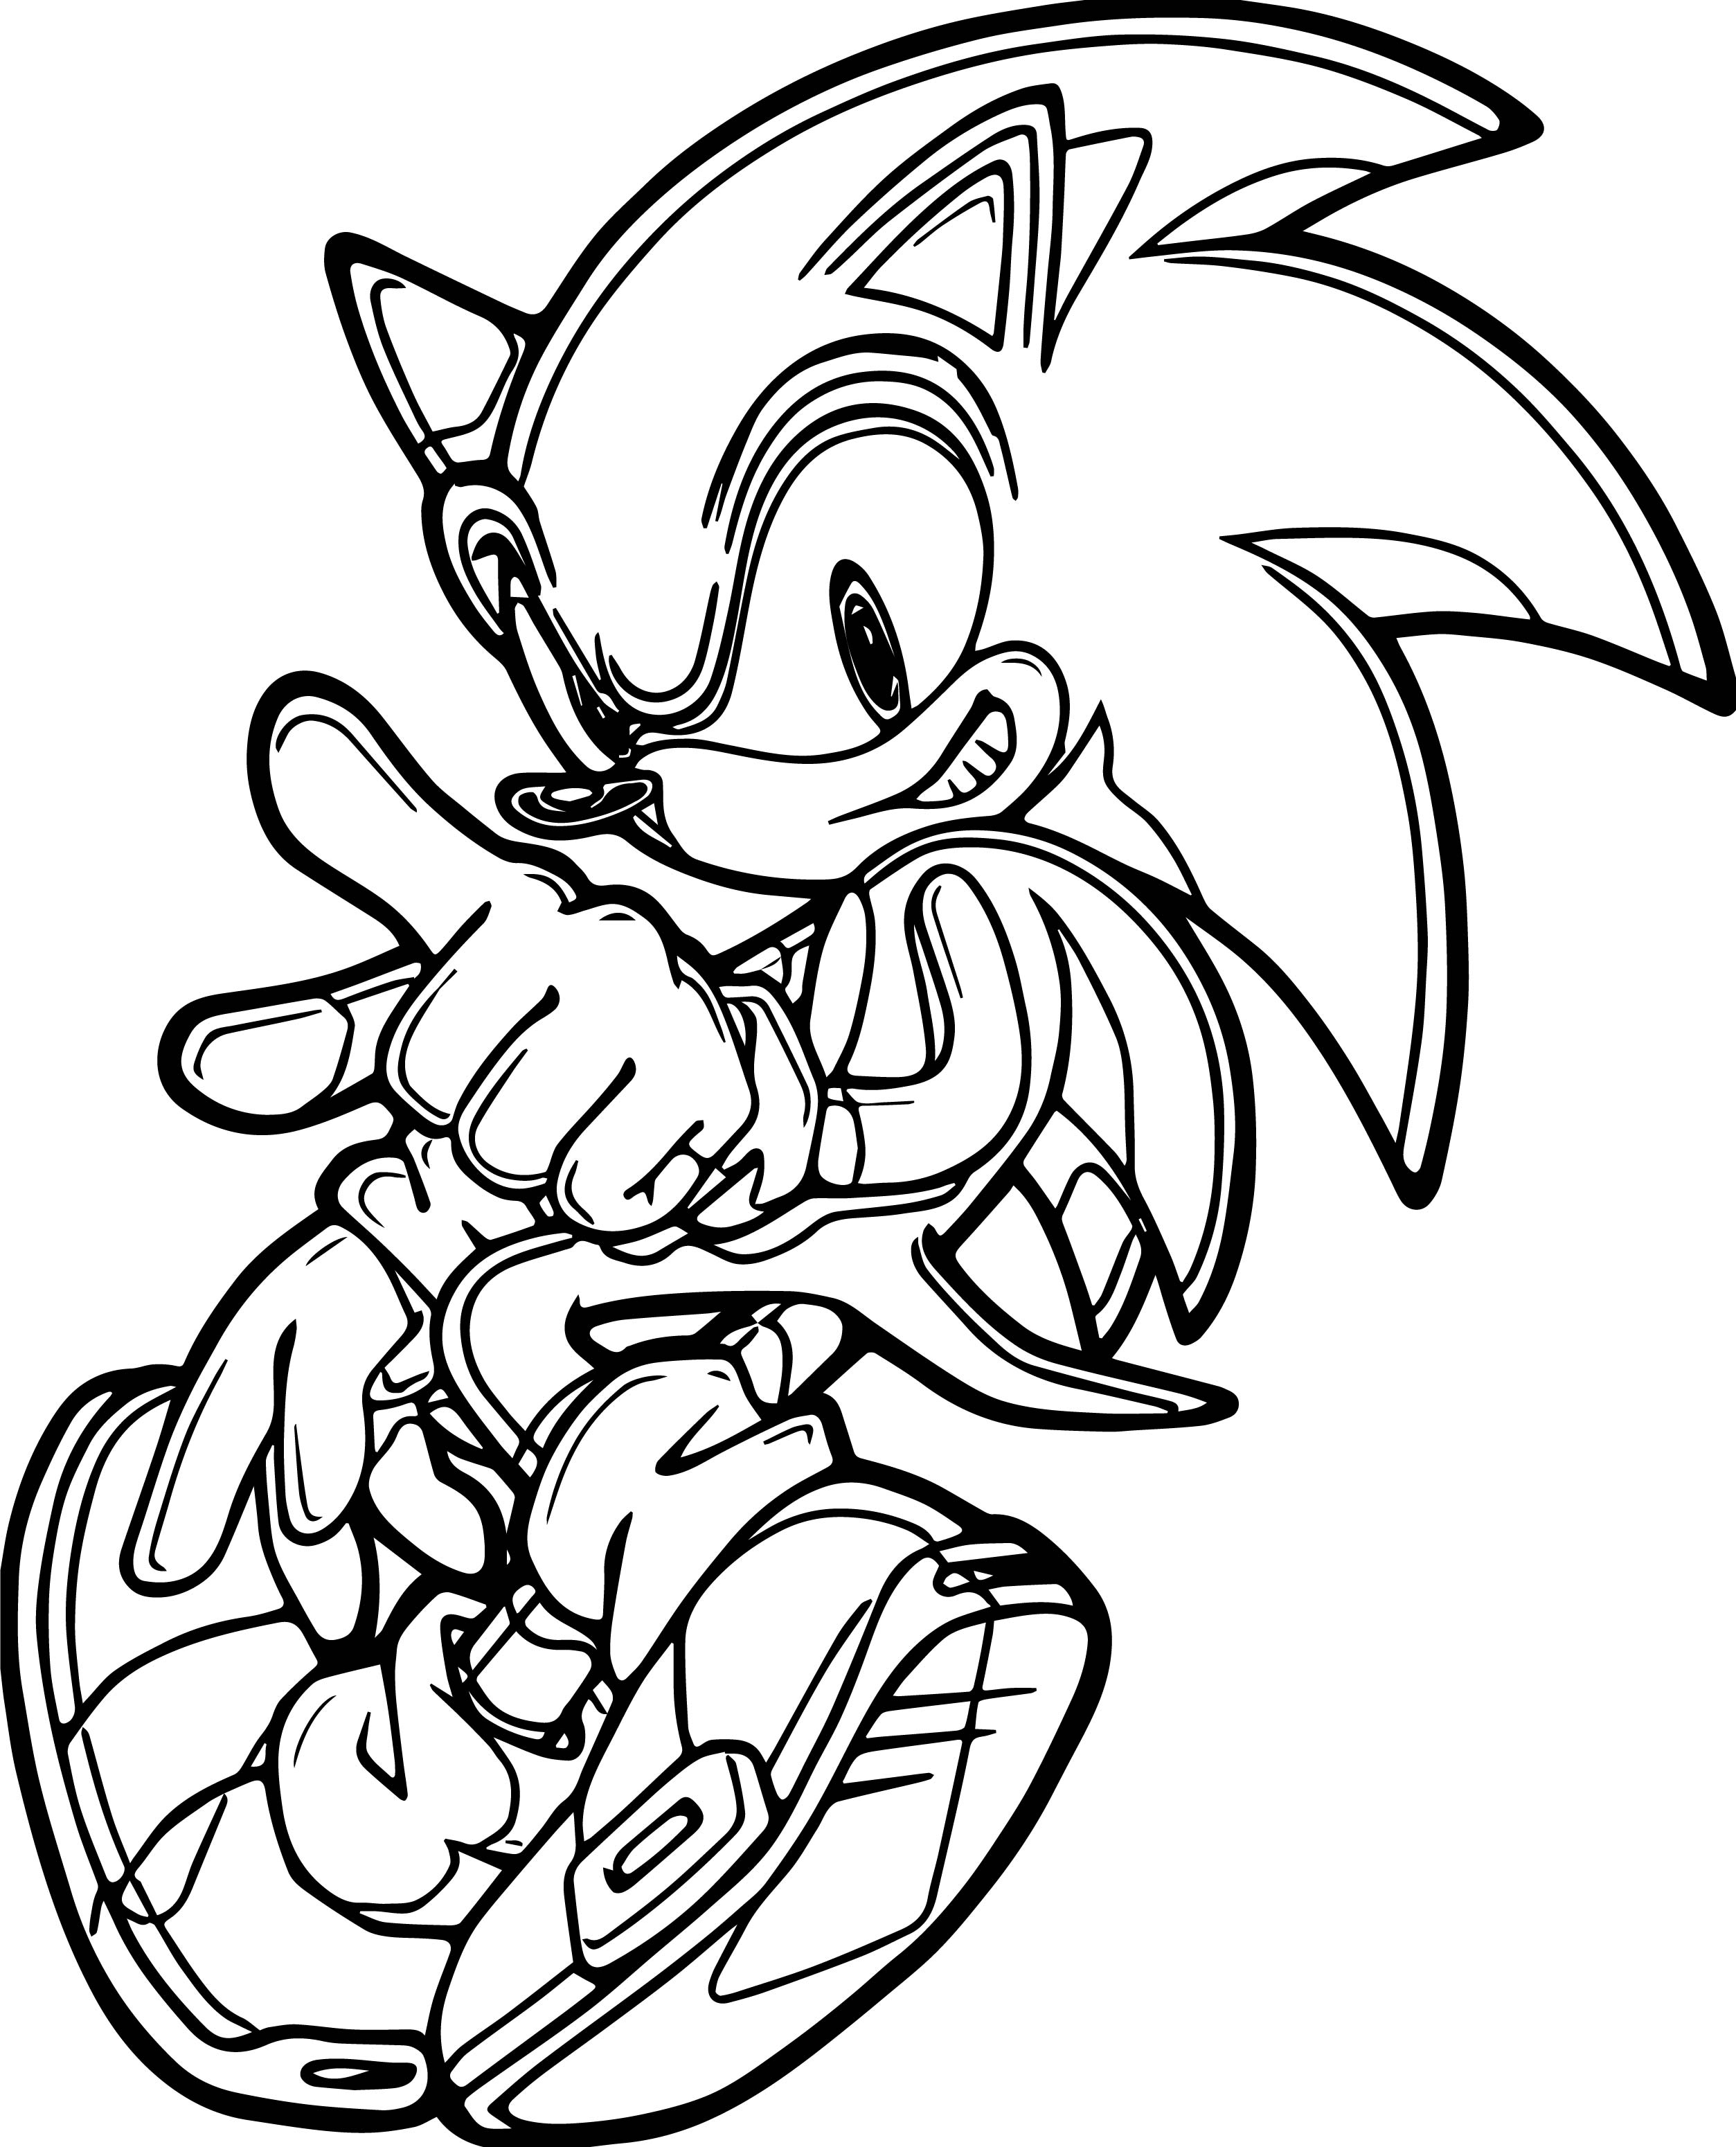 coloring pages sonic sonic boom channel 3939sonic3939 coloring pages by celina8 on pages sonic coloring